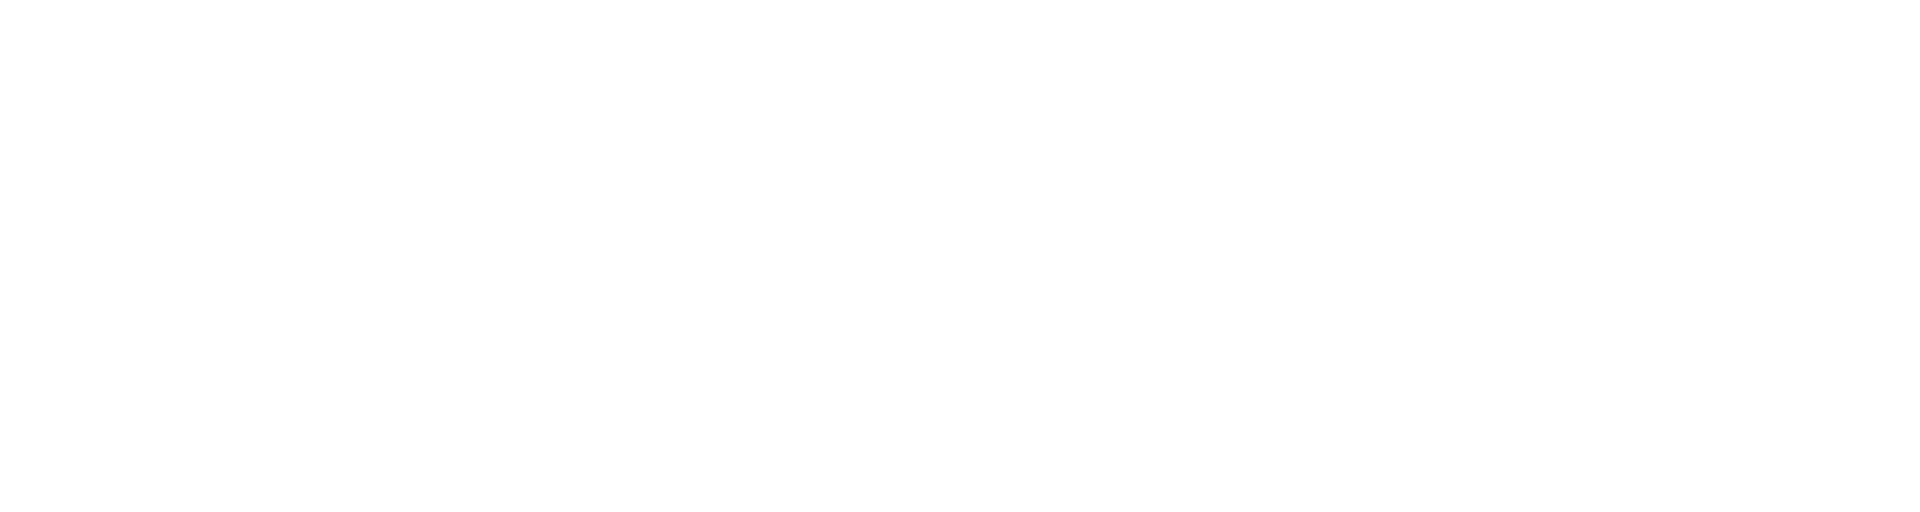 Mark's Quality Meats & Gourmet Seafood